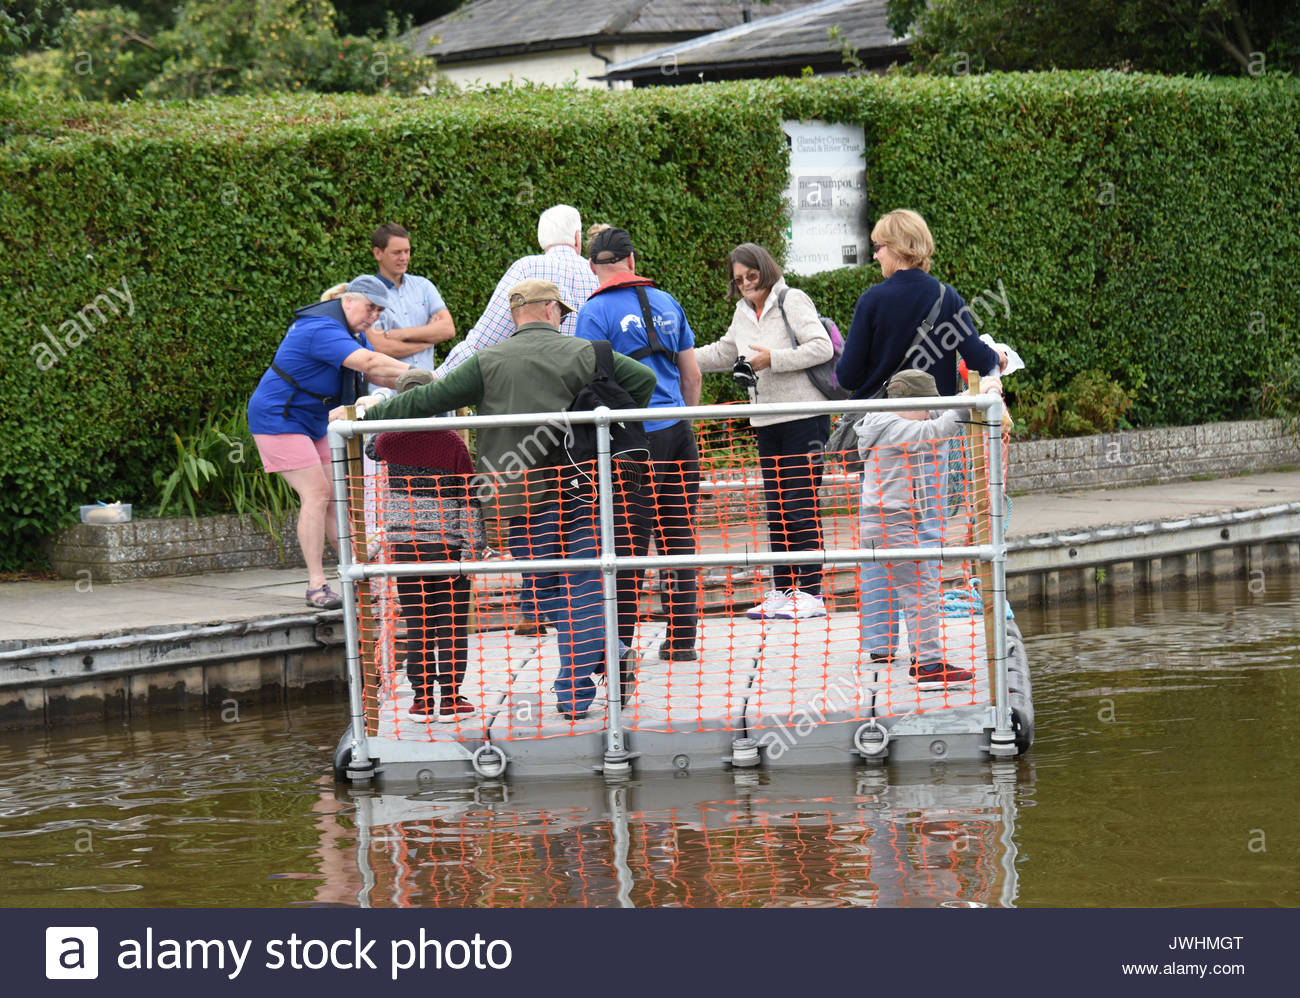 Ellesmere, UK. 13th August, 2017. Locals and visitrs enjoyed the canal based attractions at this years Ellesmere Festival held in Shropshire's own mini Lake District. Credit: Phil Pickin/ Alamy Live News - Stock Image